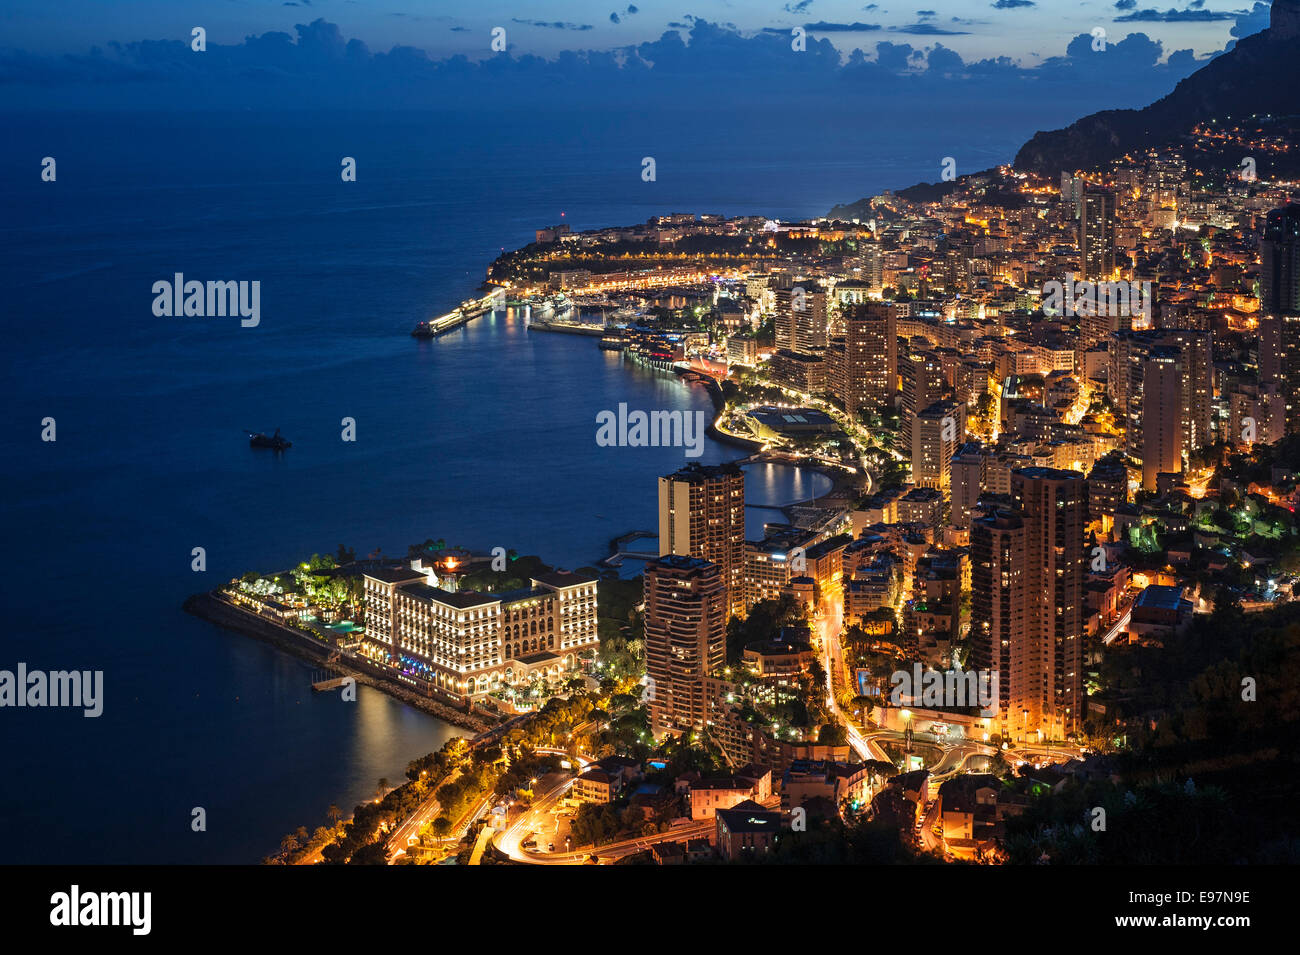 Aerial view over the city and port of Monte Carlo, Monaco along the French Riviera at night, Côte d'Azur - Stock Image